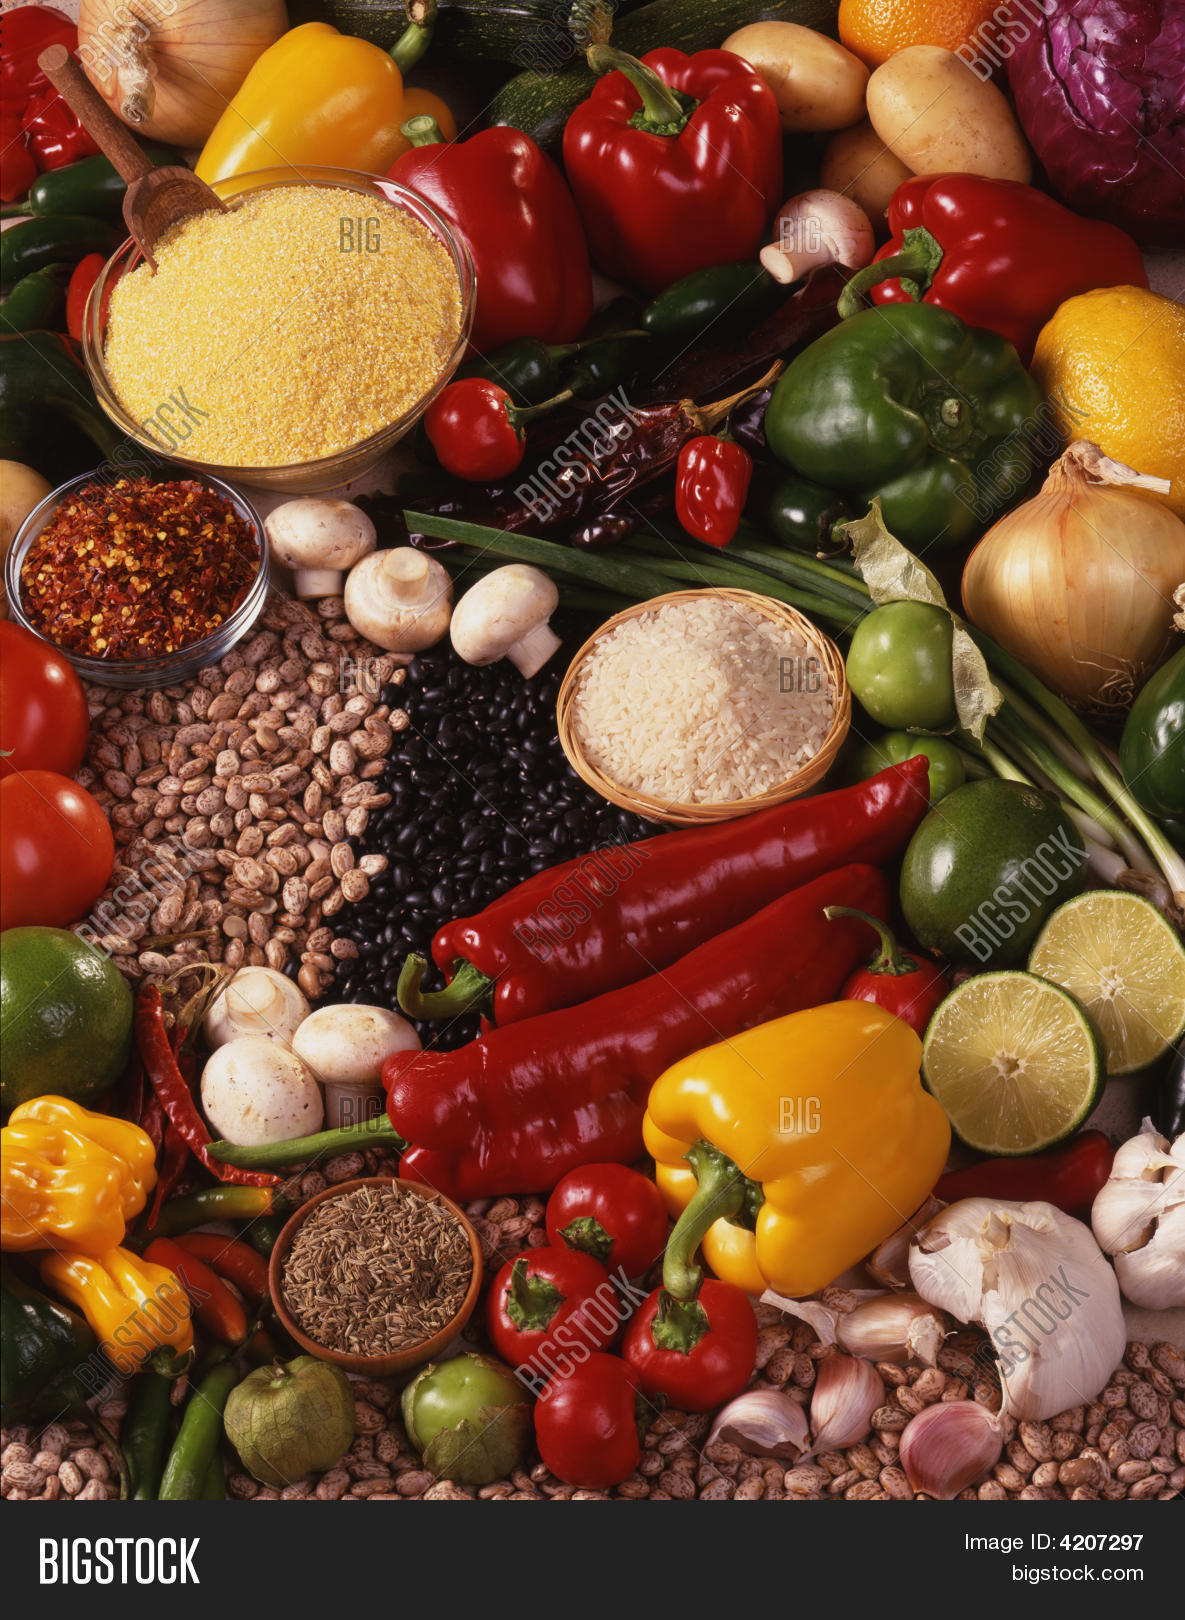 Raw mexican food ingredients image photo bigstock raw mexican food ingredients forumfinder Image collections